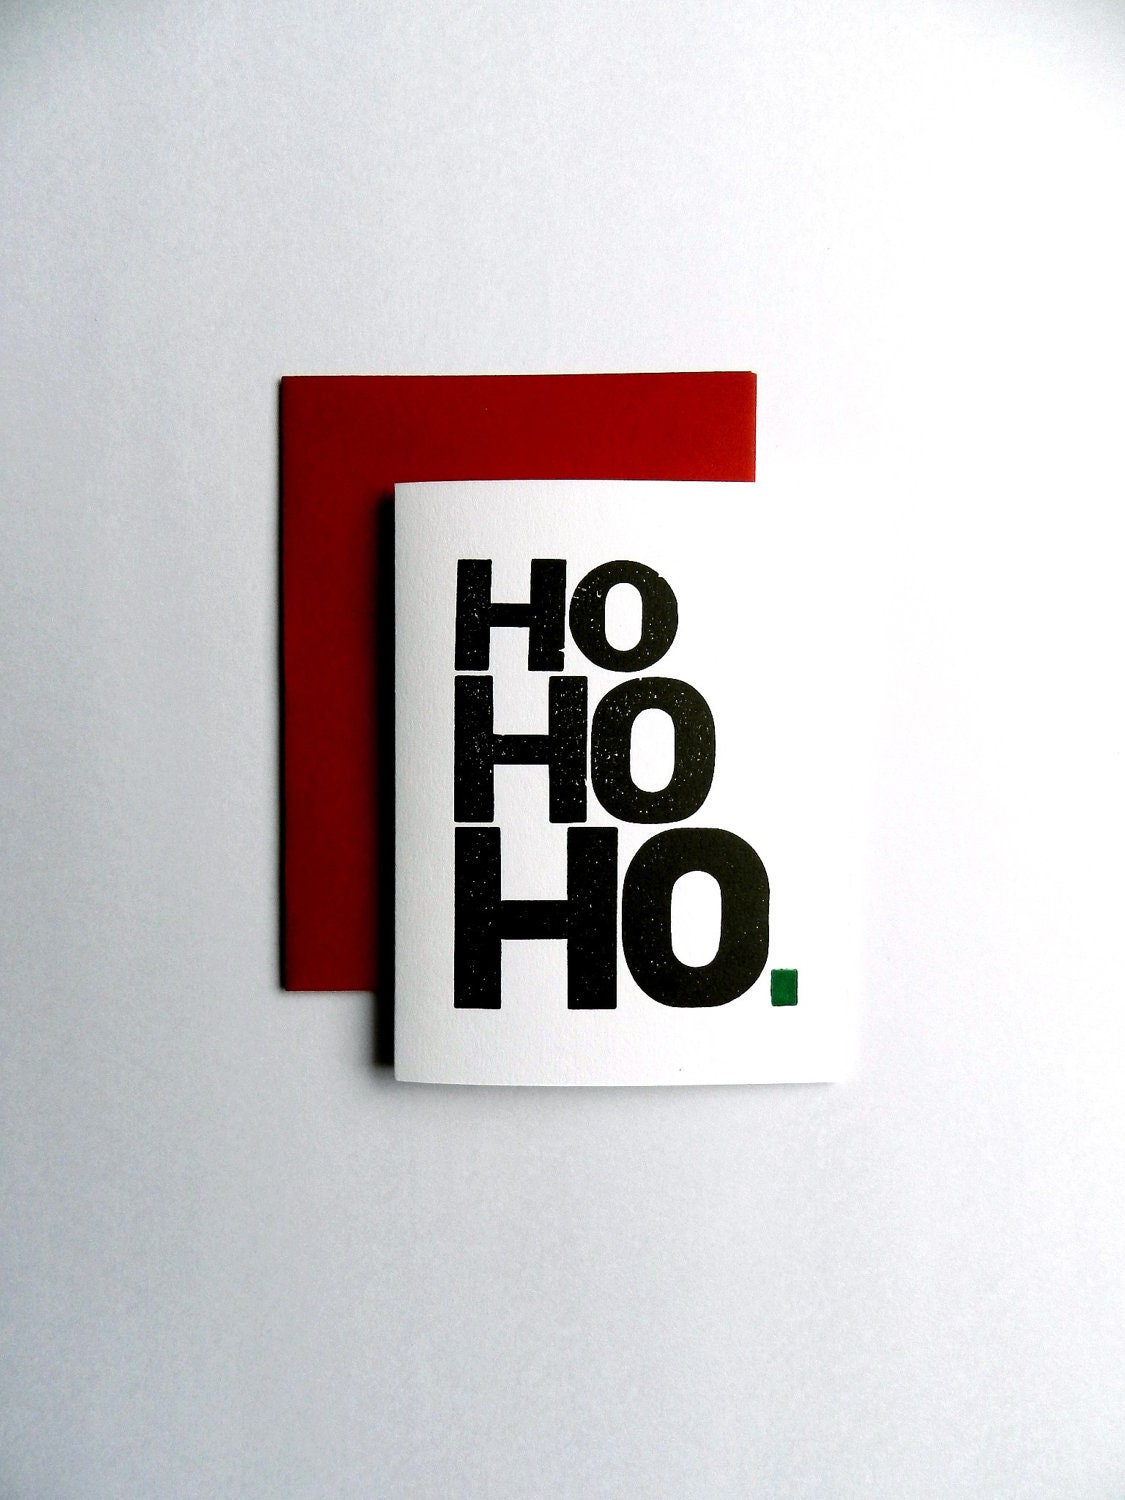 Bulk 25 Christmas Cards, Holiday Letterpress Ho Ho Ho, Simple Design, Santa Clause Theme, Black and White, Red Envelope (Set of 25) - happydeliveries